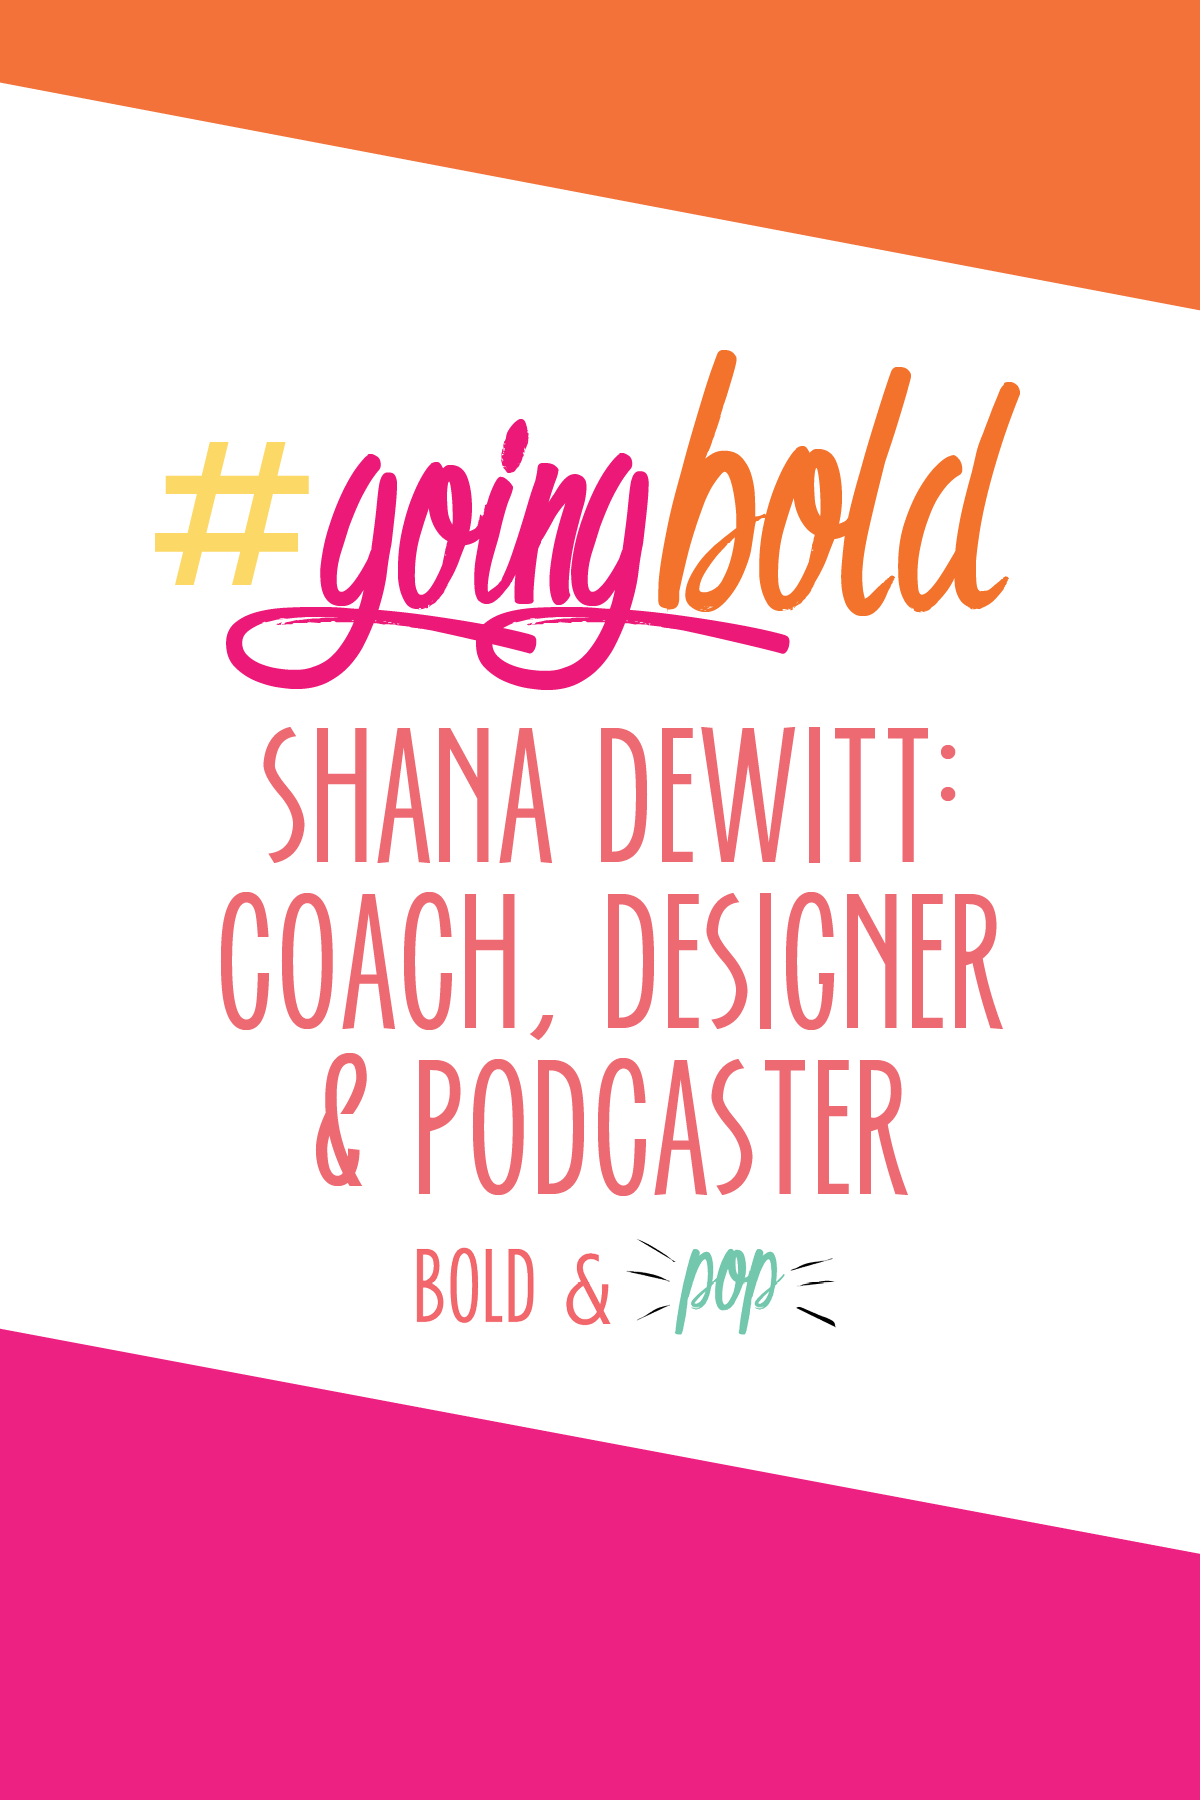 Bold & Pop: #GoingBold Feature with  Shana Dewitt: Coach, Designer and Podcaster